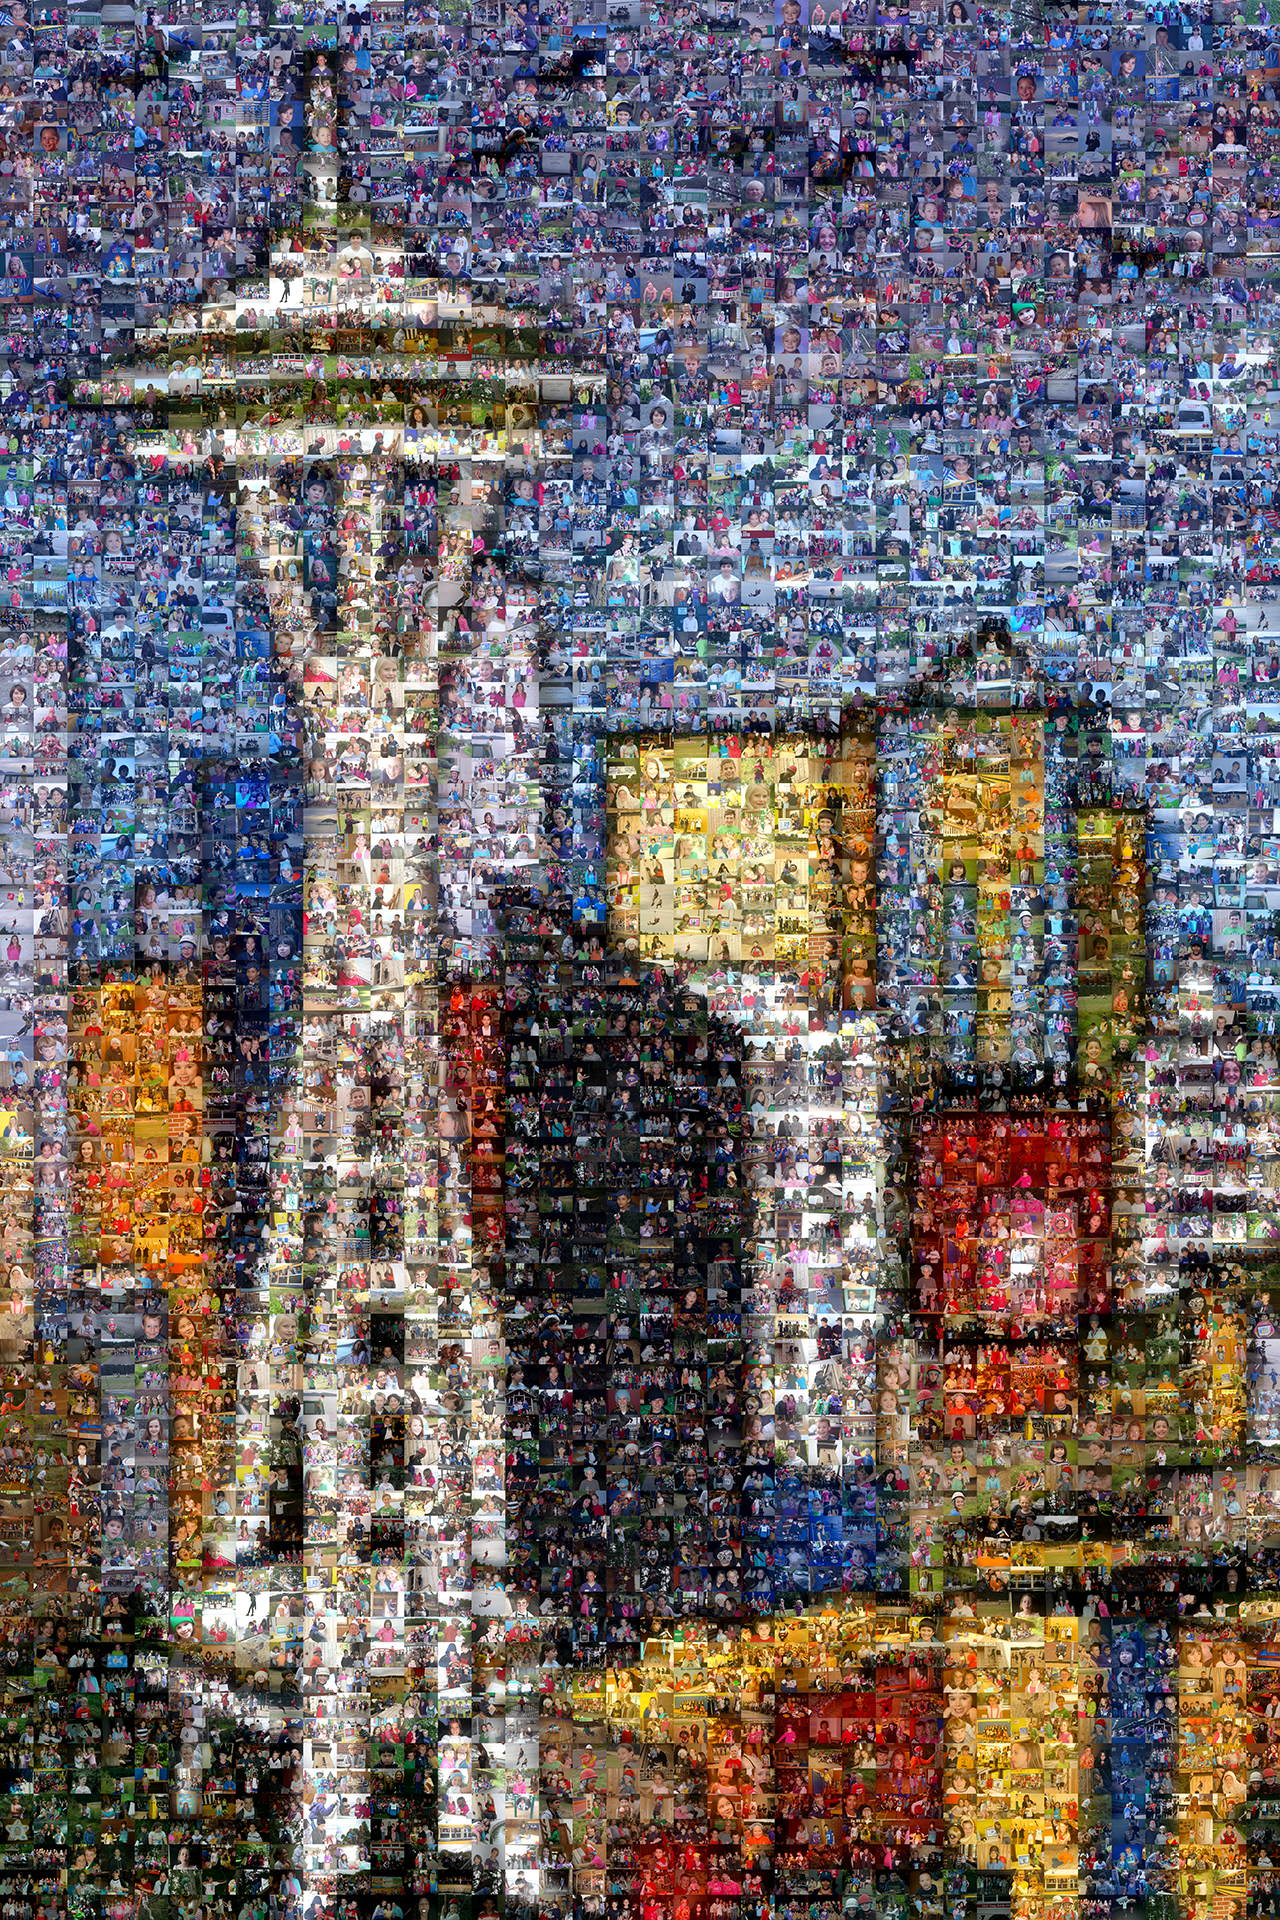 photo mosaic created using 1323 photos each only used once